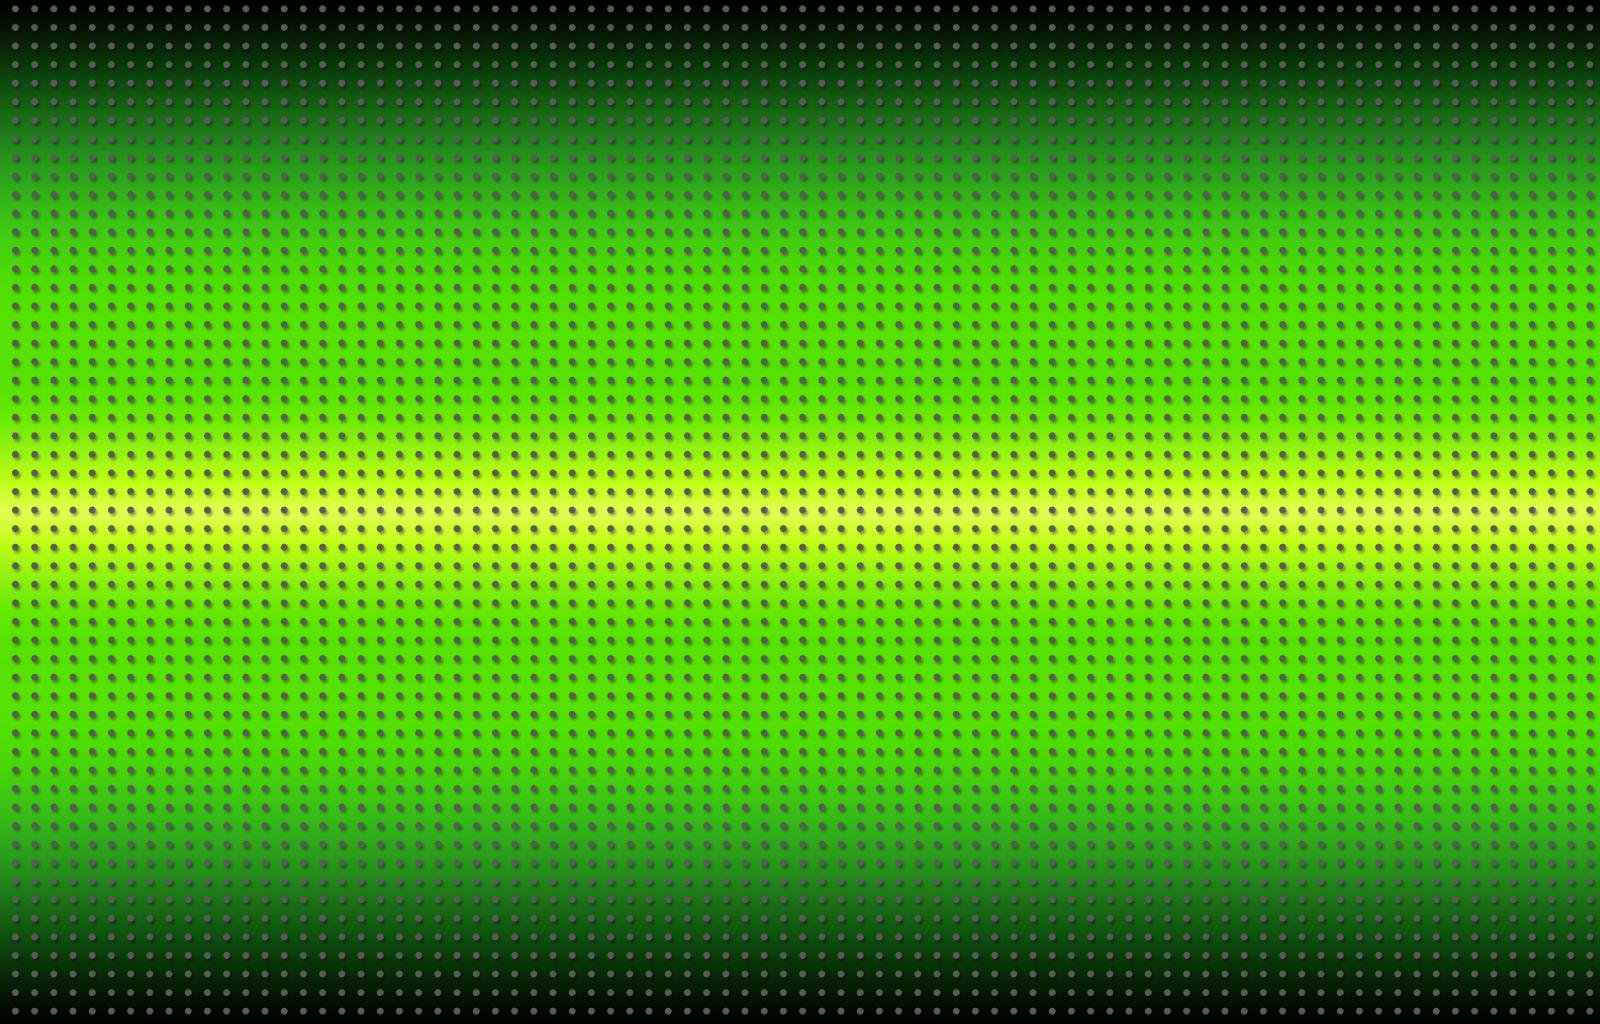 Download hd 1600x1024 Green Pattern computer wallpaper ID:21978 for free